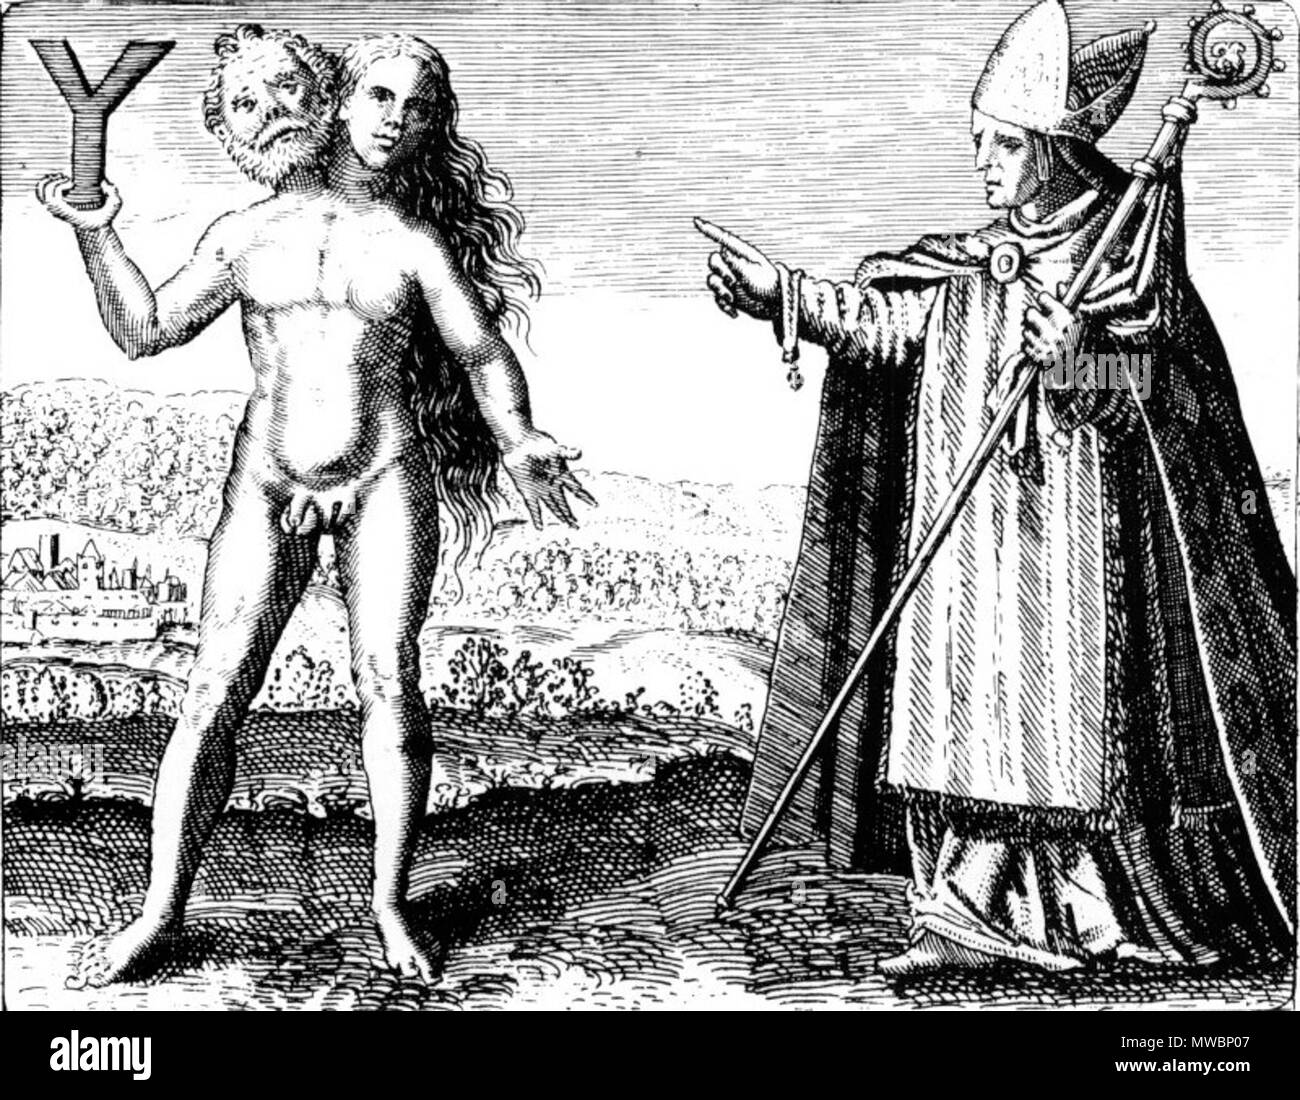 . English: An engraving from Michael Maier's Symbola Aureae Mensae (1617) we see Albertus Magnus pointing to an alchemical androgyne holding the letter Y. Zola (42) explains, 'The Y is, as Philo taught, the symbol of the Word which pierces the essence of being. The Nassine Gnostics taught that it represented the intimate nature of being, which is male and female and, as such, eternal.' . circa 1617. Michael Maier (1568–1622) 190 Engraving from Michael Maier's Symbola Aureae Mensae (1617) - Stock Image